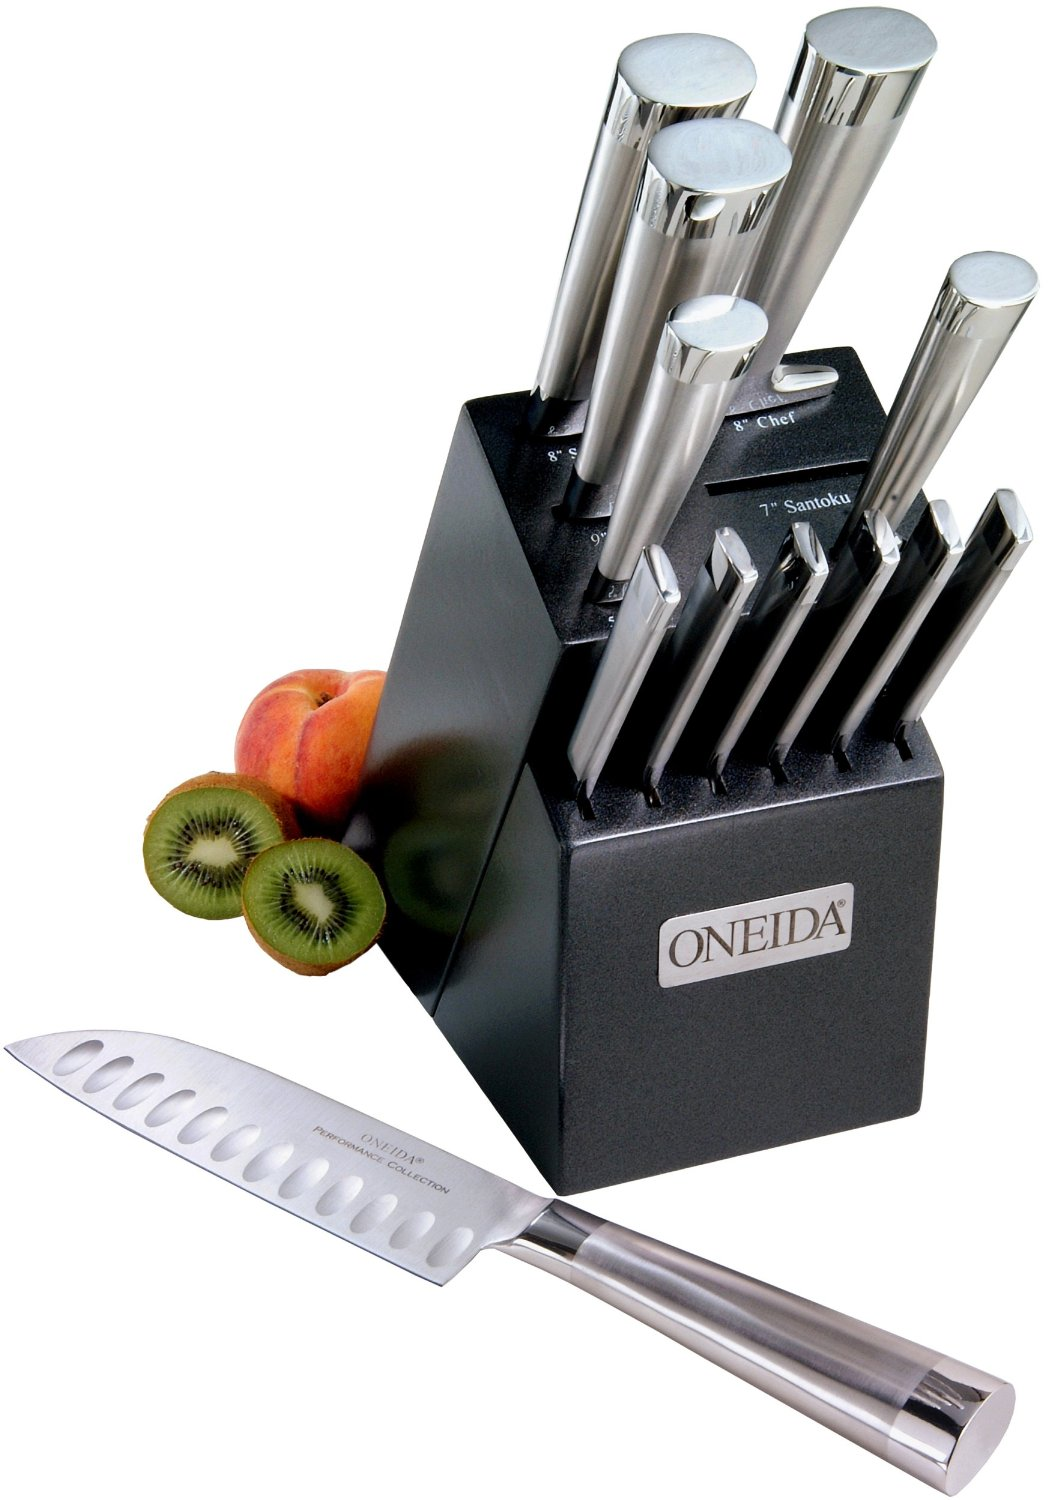 Which Knife Set Best